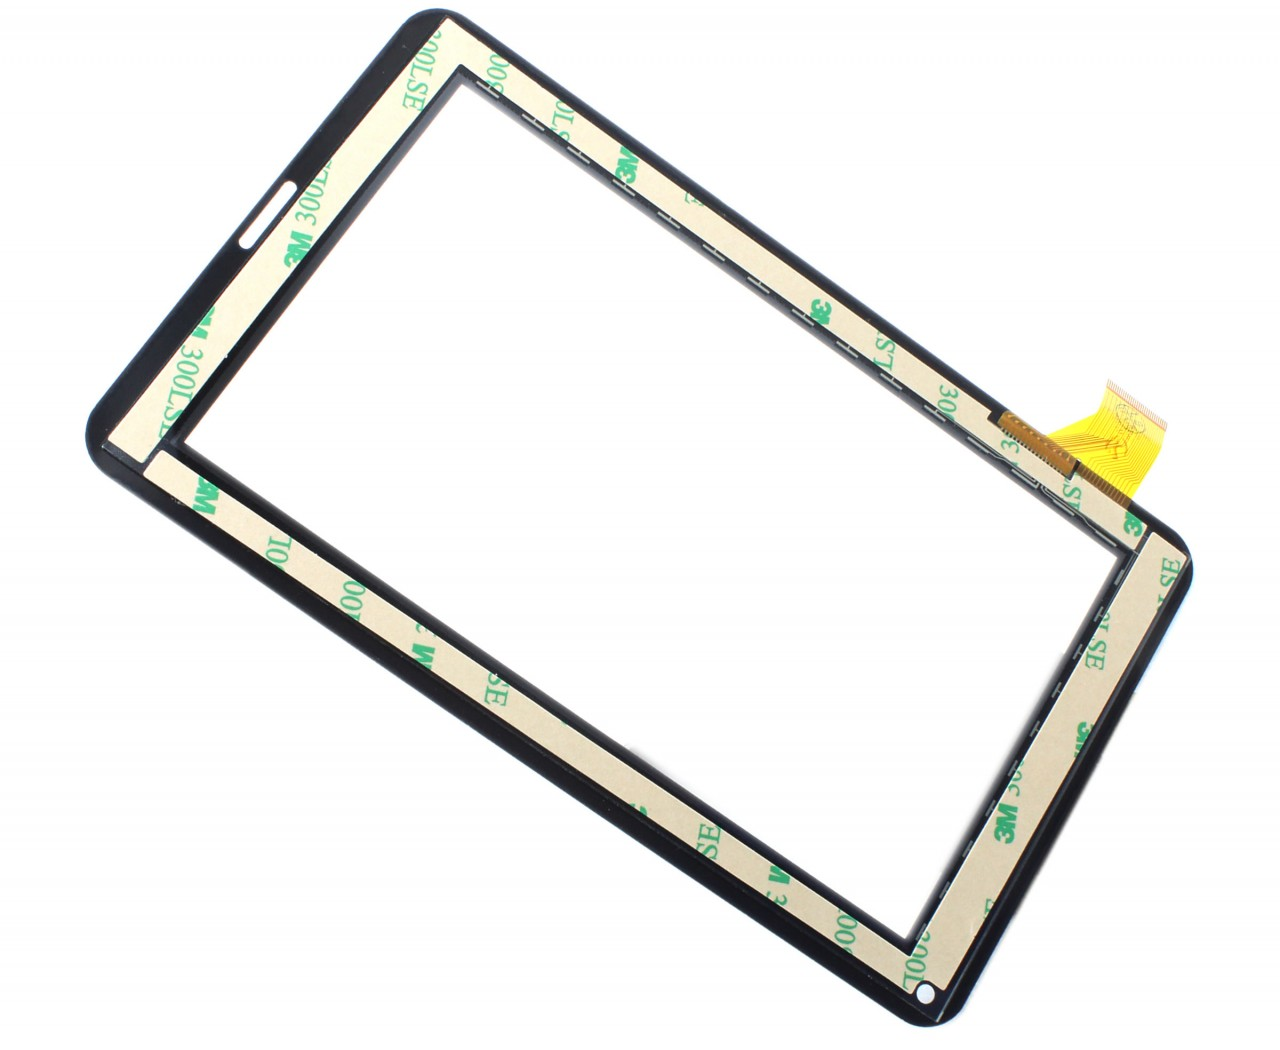 Touchscreen Digitizer Serioux Surya Antares SMO9VDC Geam Sticla Tableta imagine powerlaptop.ro 2021